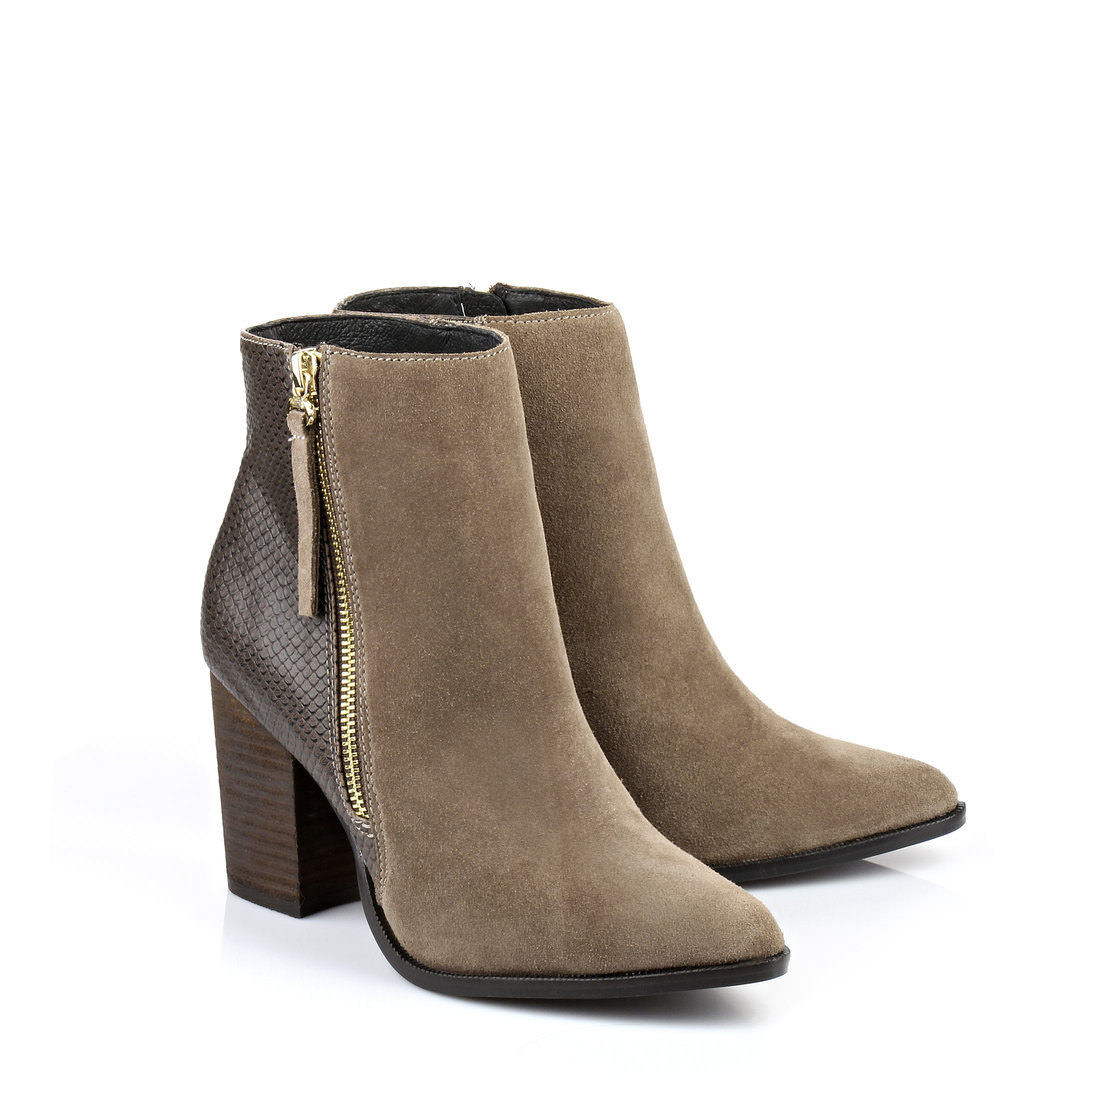 buffalo ankle boots in camel online im buffalo online shop kaufen buffalo online shop. Black Bedroom Furniture Sets. Home Design Ideas